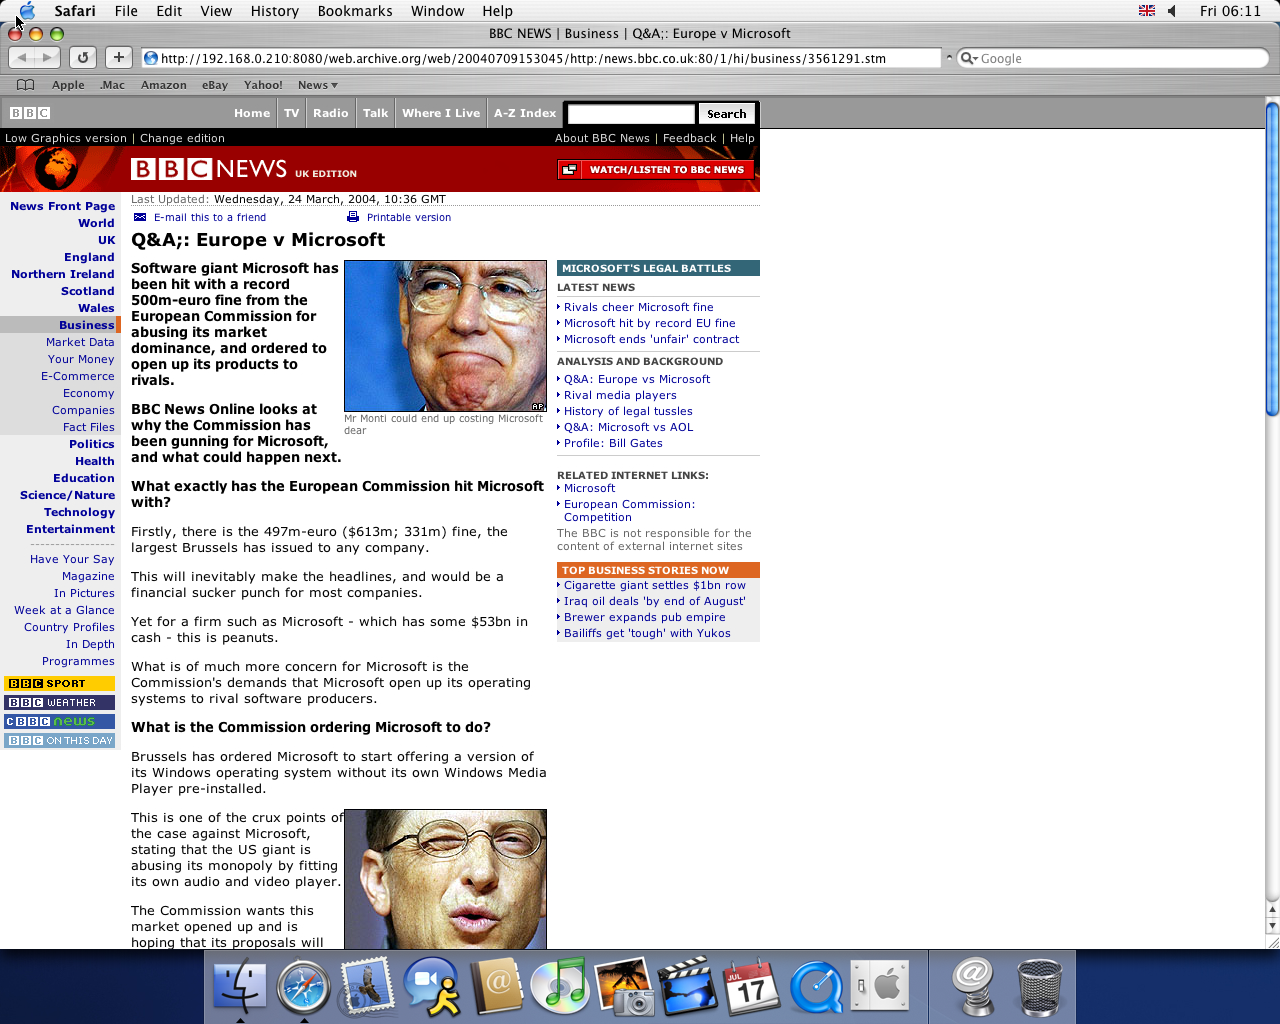 OS X 10.3 PPC with Safari 1.1 displaying a page from BBC News archived at July 09, 2004 at 15:30:45